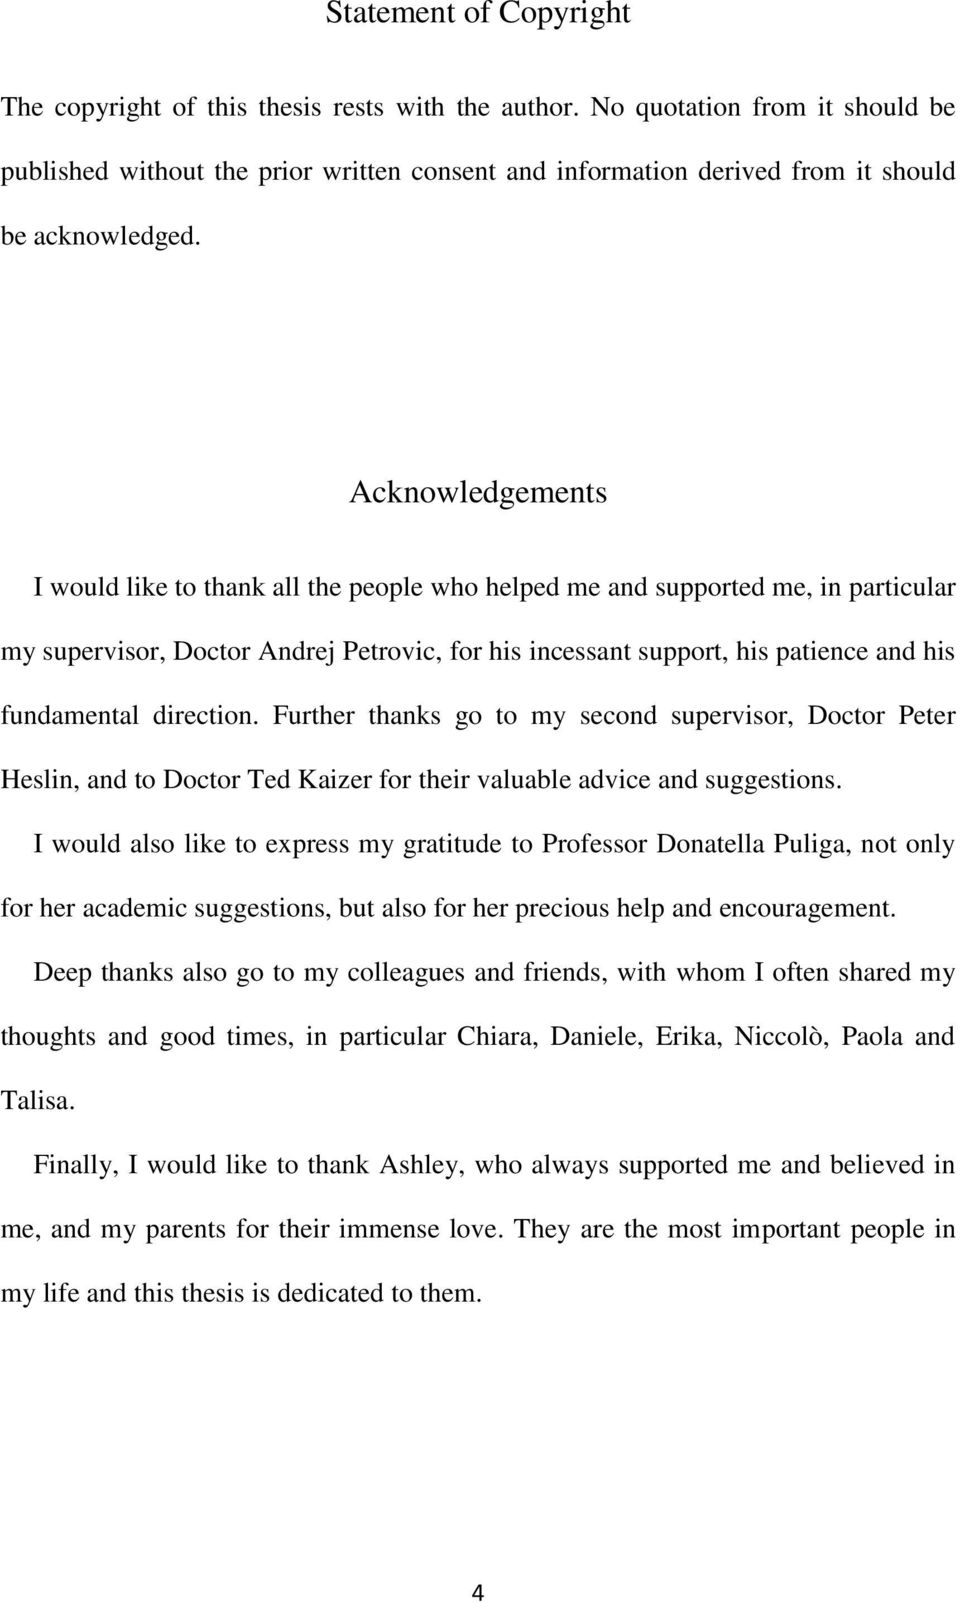 Acknowledgements I would like to thank all the people who helped me and supported me, in particular my supervisor, Doctor Andrej Petrovic, for his incessant support, his patience and his fundamental